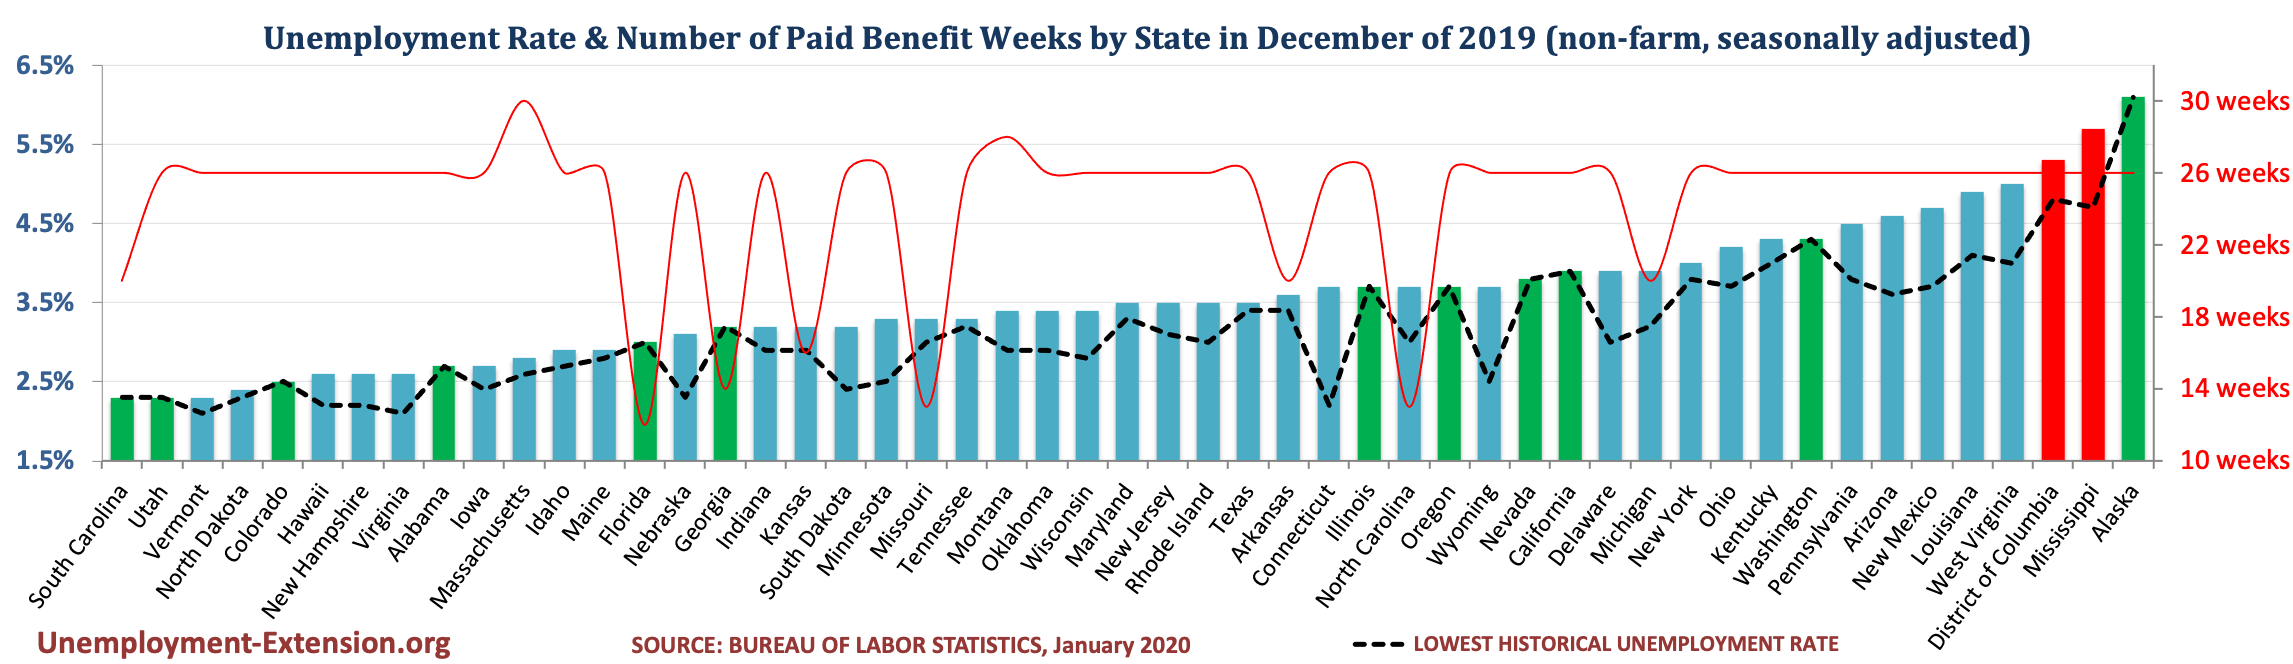 Unemployment Rate and Number of Paid Unemployment Benefit weeks by State (non-farm, seasonally adjusted) in December of 2019